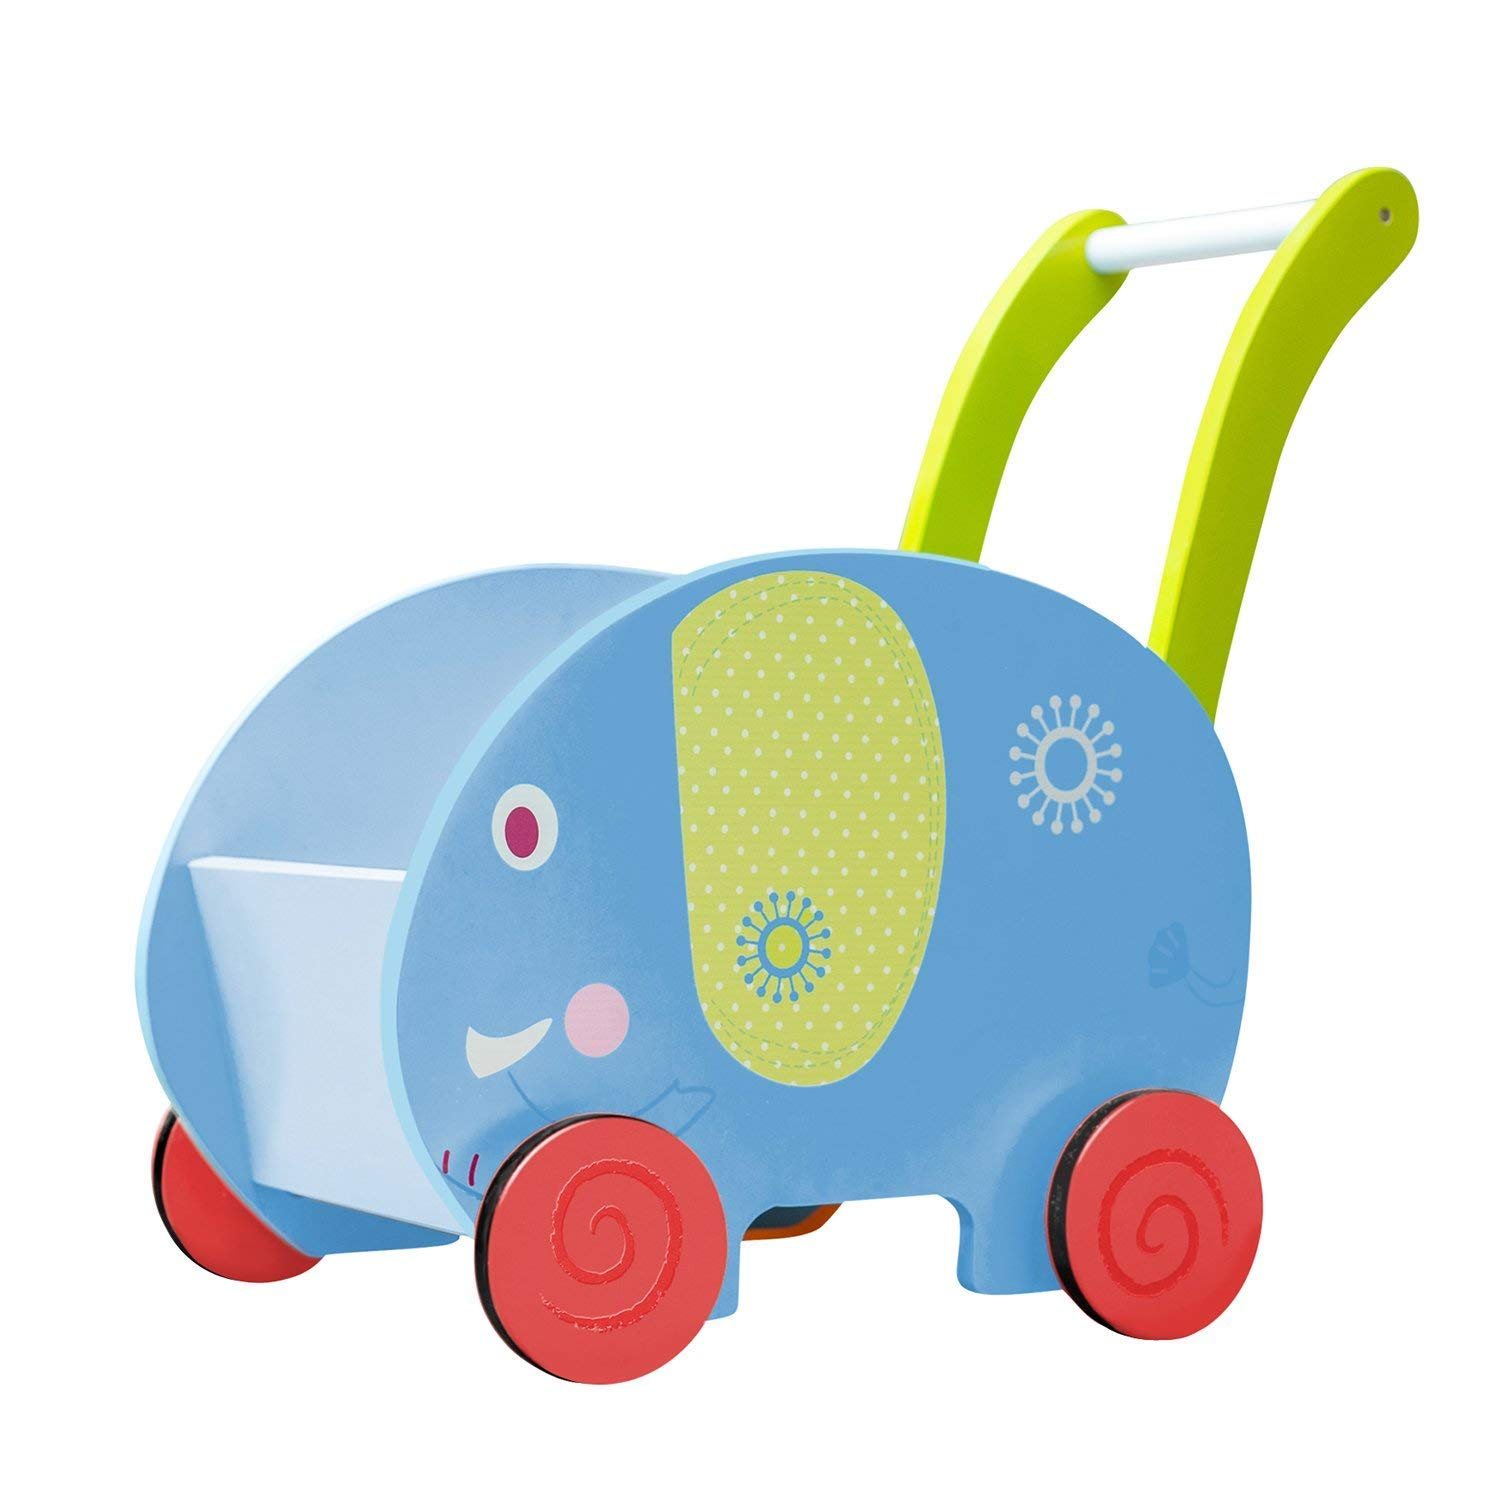 Toddler Sit-to-Stand Walking Toy Wooden Push and Pull Baby Walker with Wheels and Storage for 1 Year up Kids - Blue Elephant